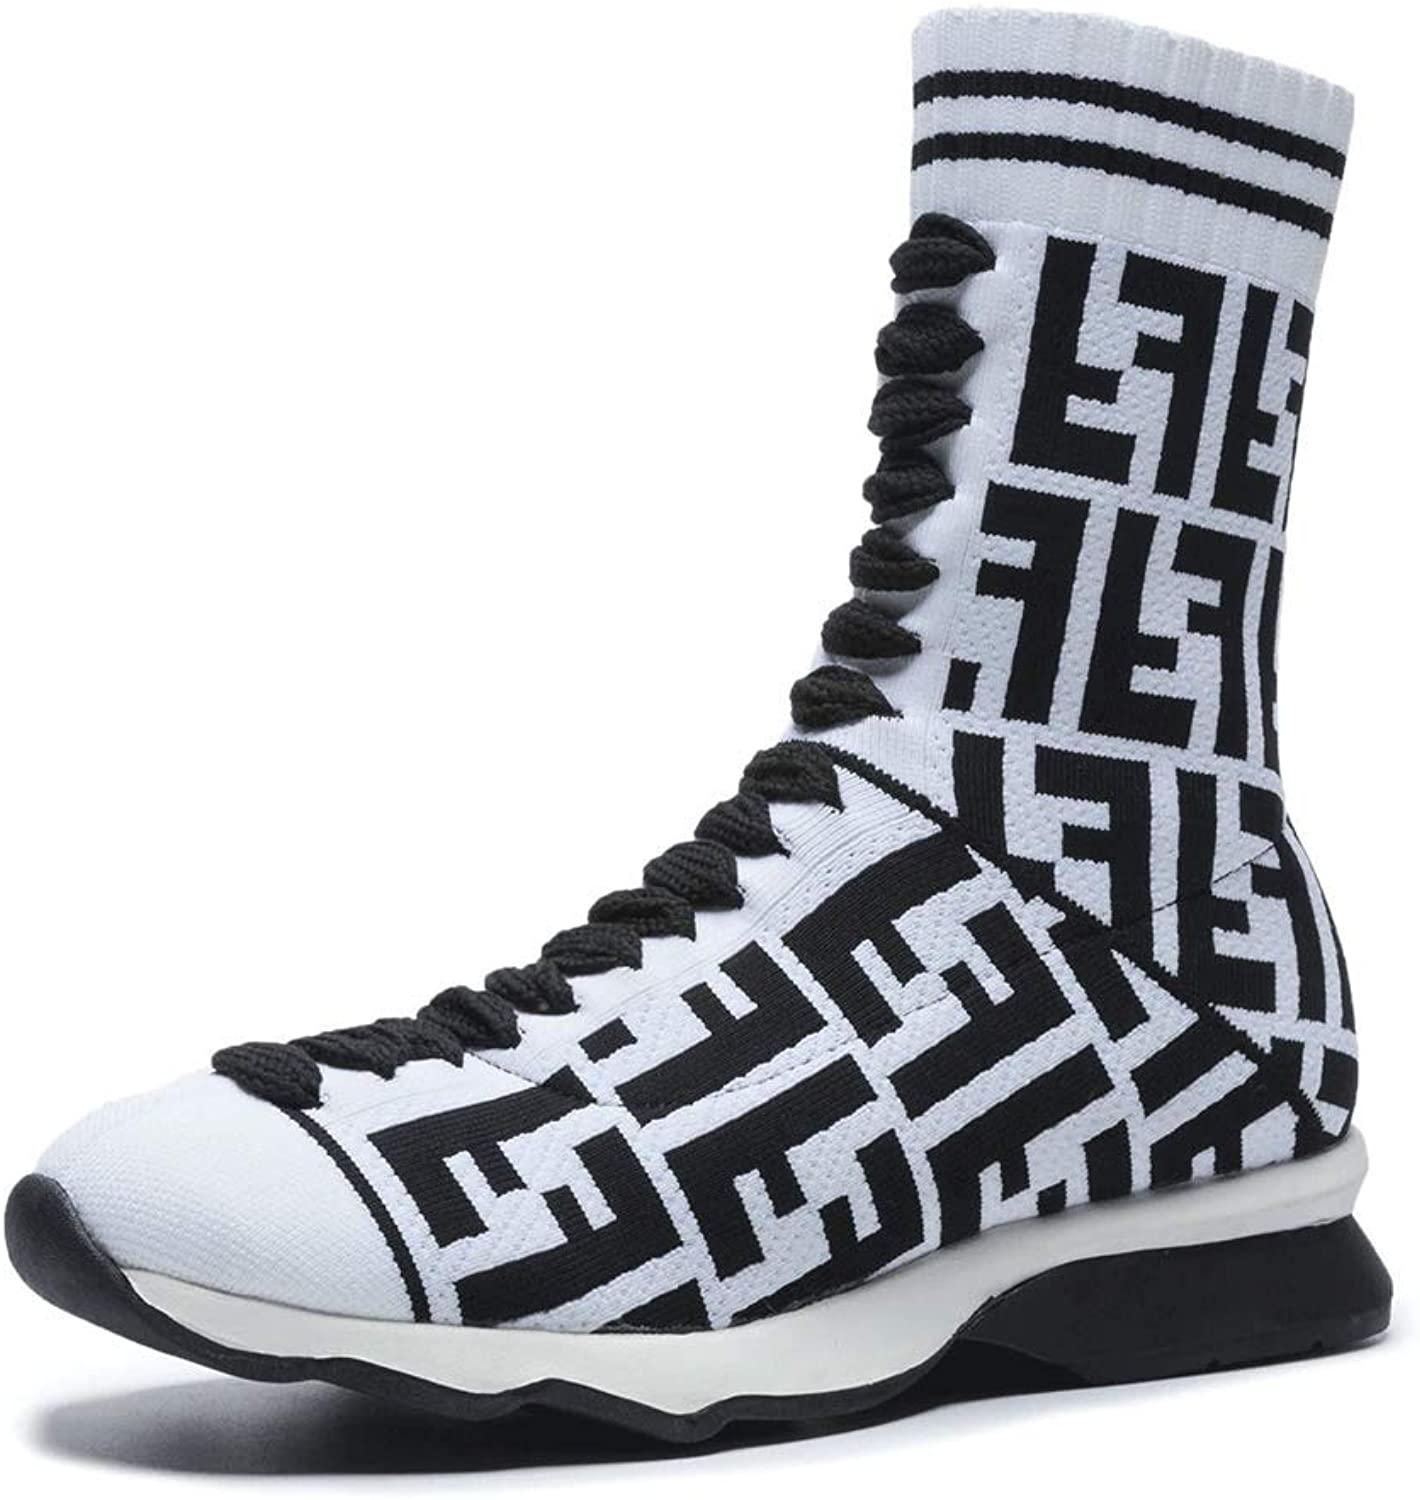 LIURUIJIA Womens Mens High-Top Stretchy Flyknit Sock Sneakers Pearl Studded Casual SZX-OXL130541